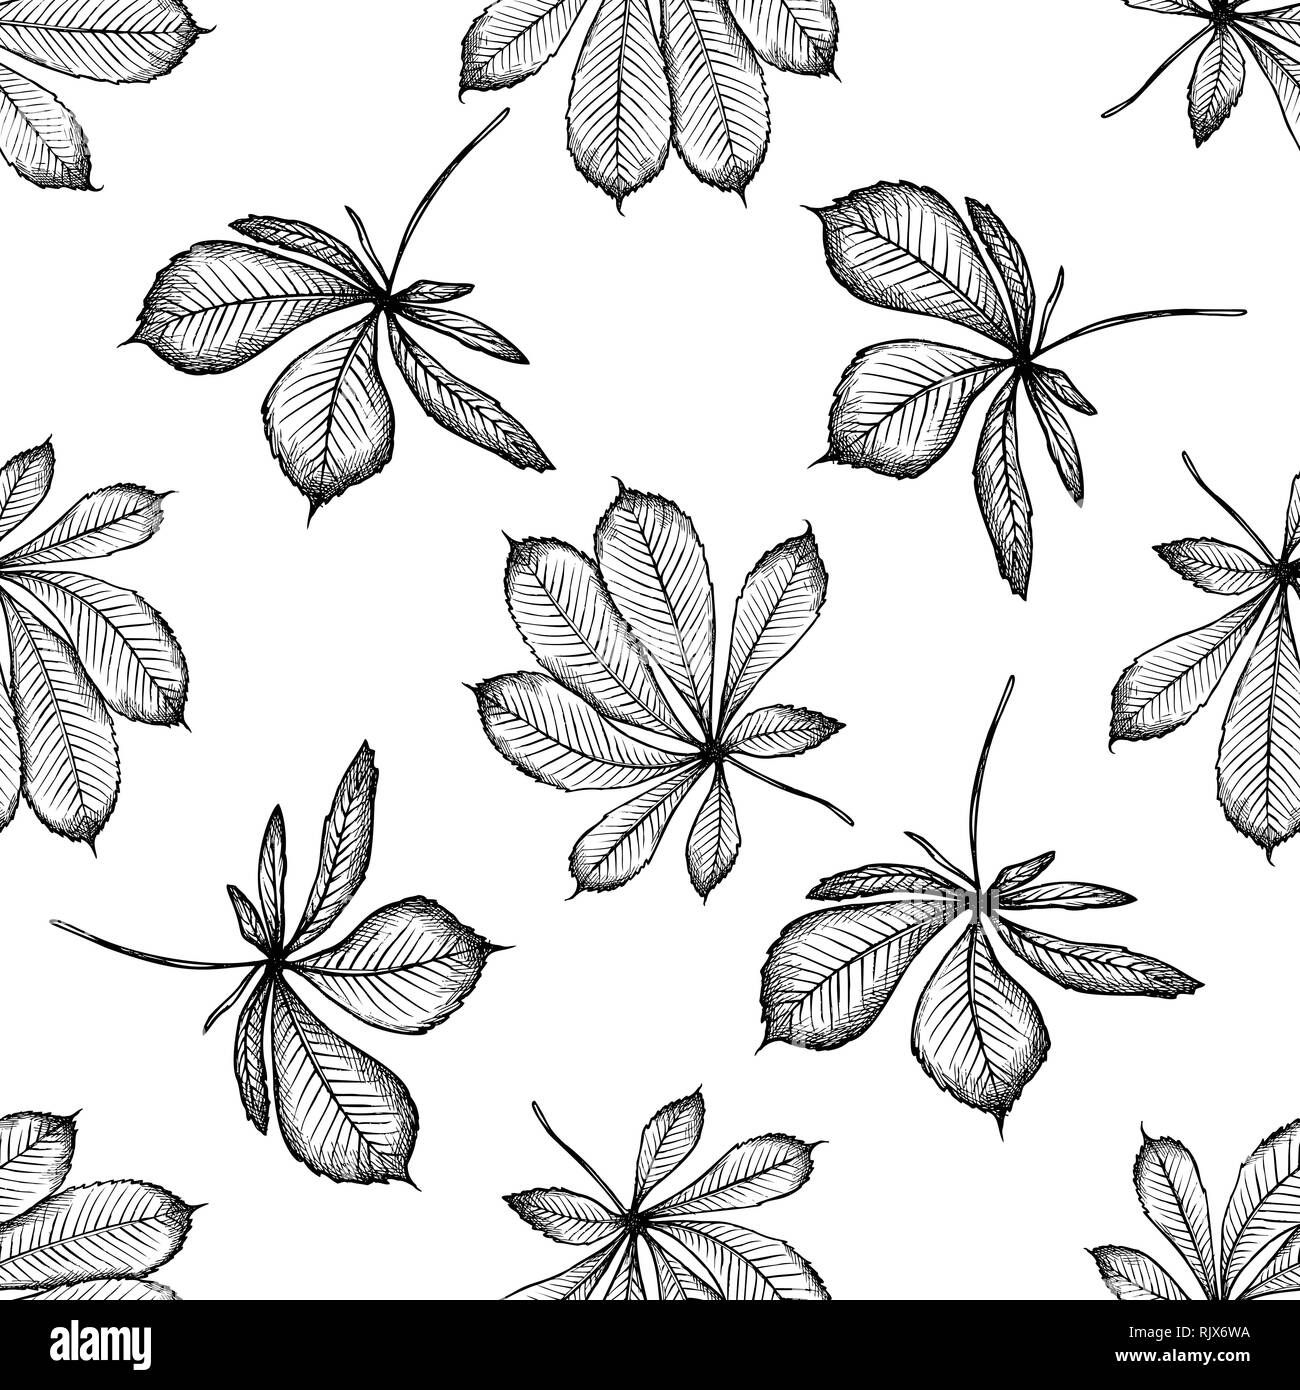 Seamless pattern with black and white buckeye - Stock Image